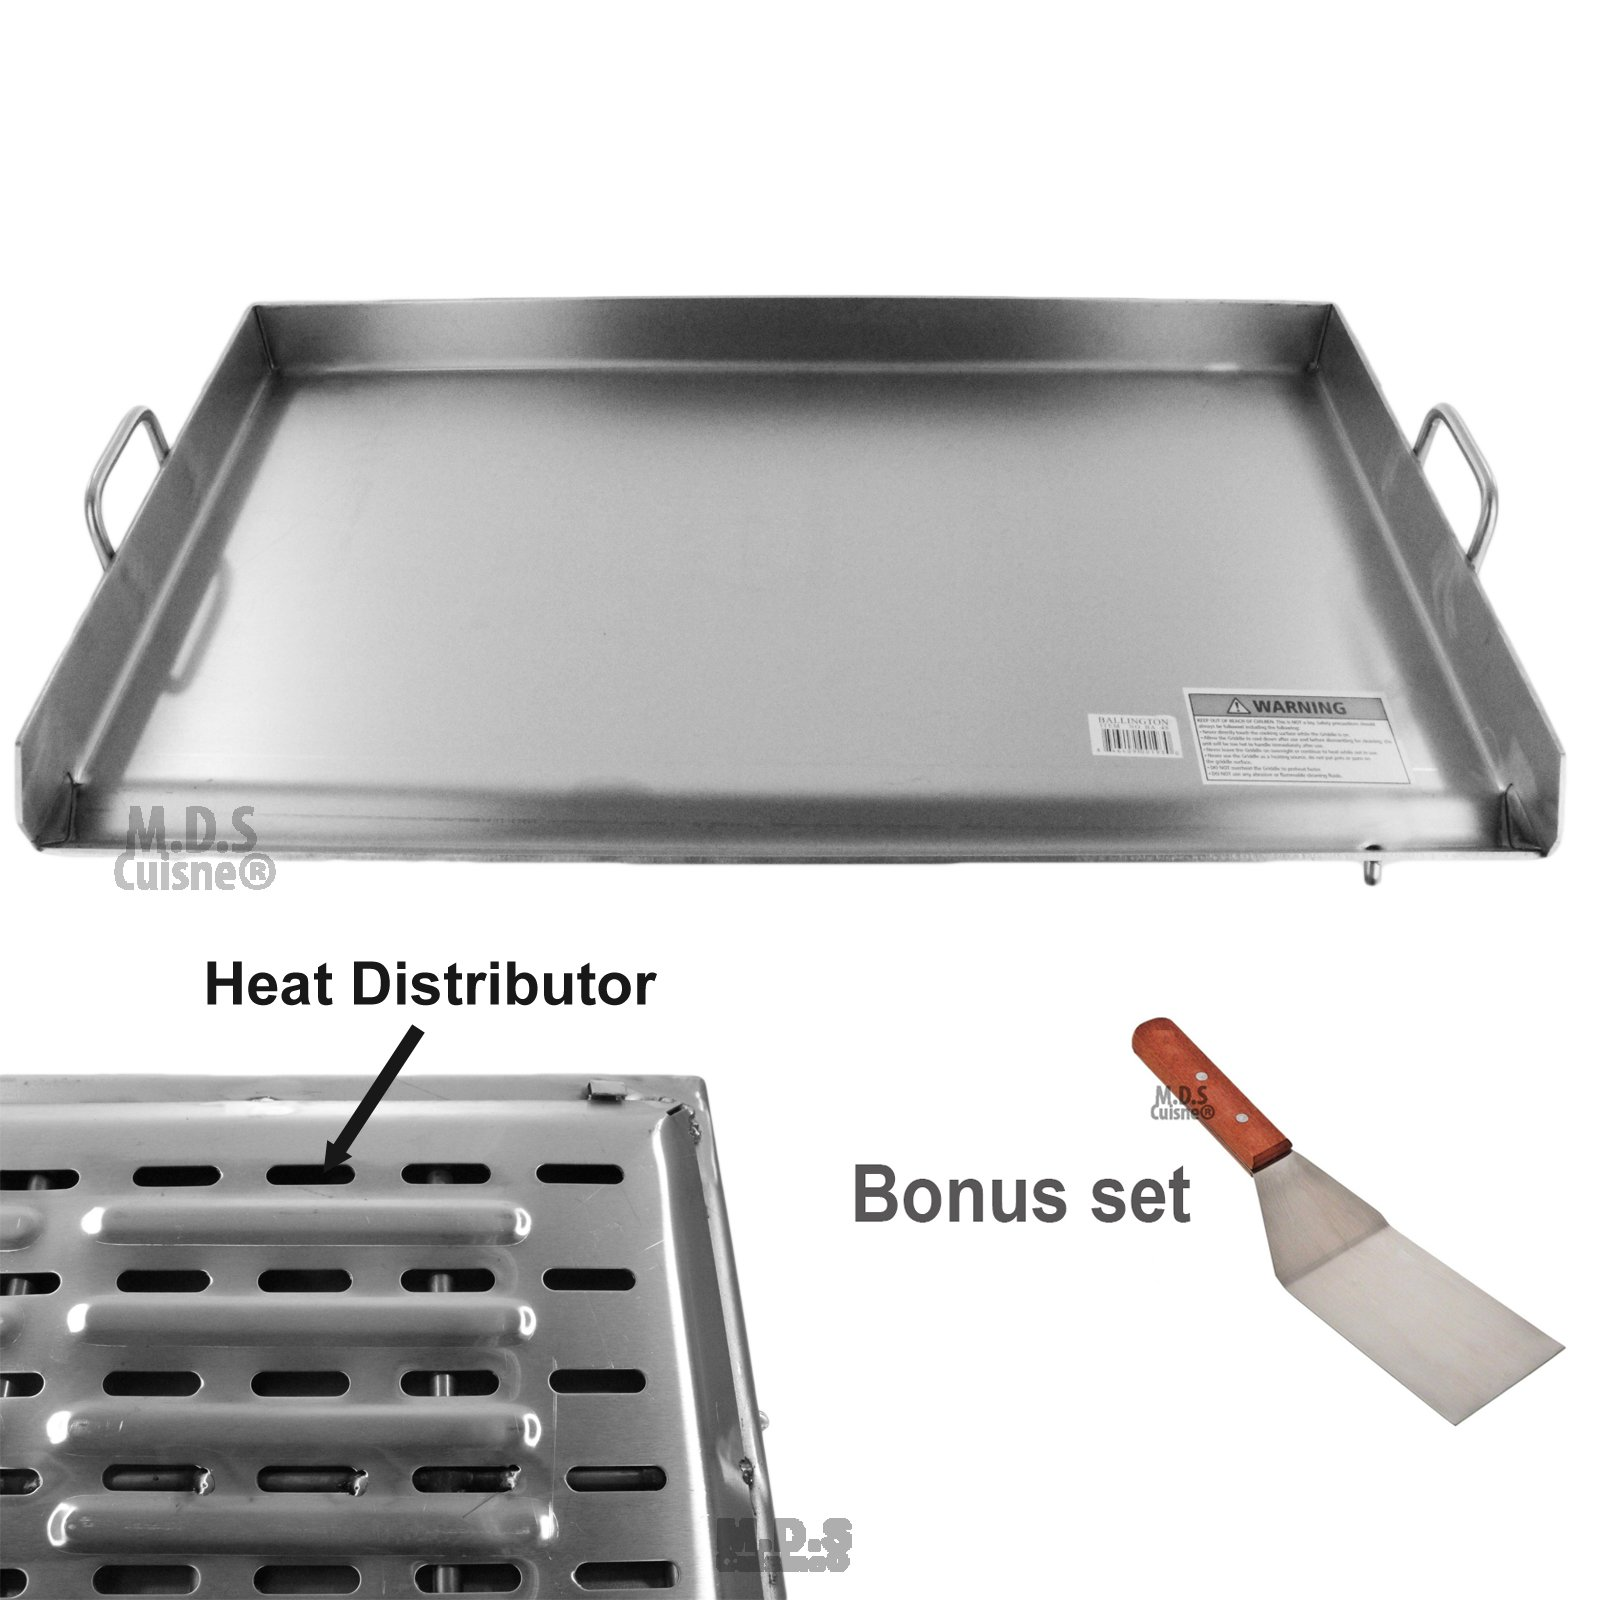 Griddle Stainless Steel Flat Top With reinforced brackets under griddle-Heat Distributor Heavy Duty Comal Plancha 36'' x22''